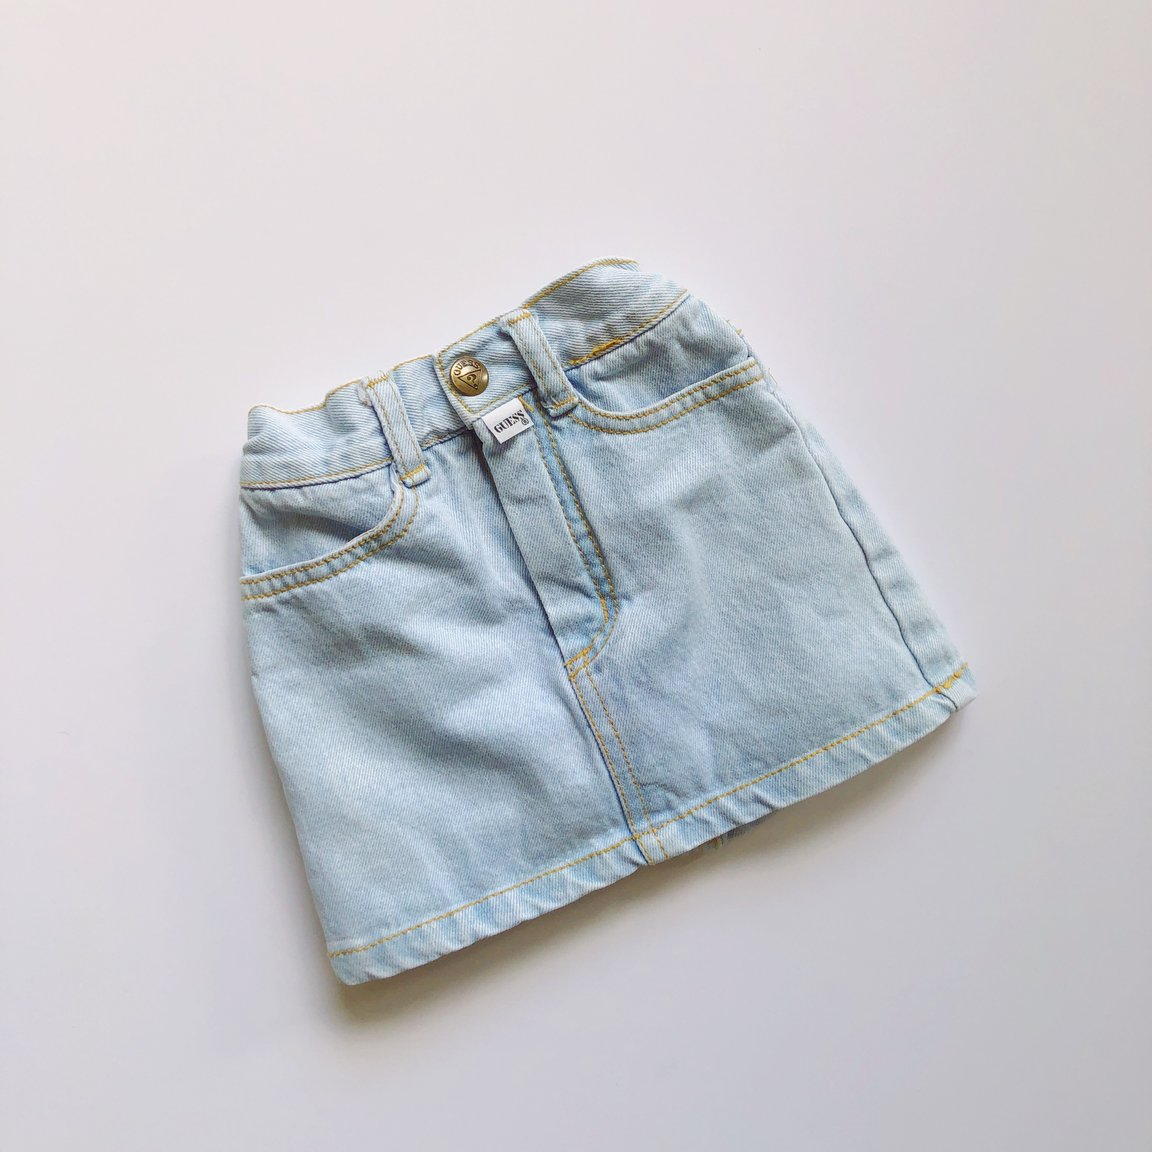 Vintage Denim Mini Skirt Styled 2-Ways / Size 6-9M